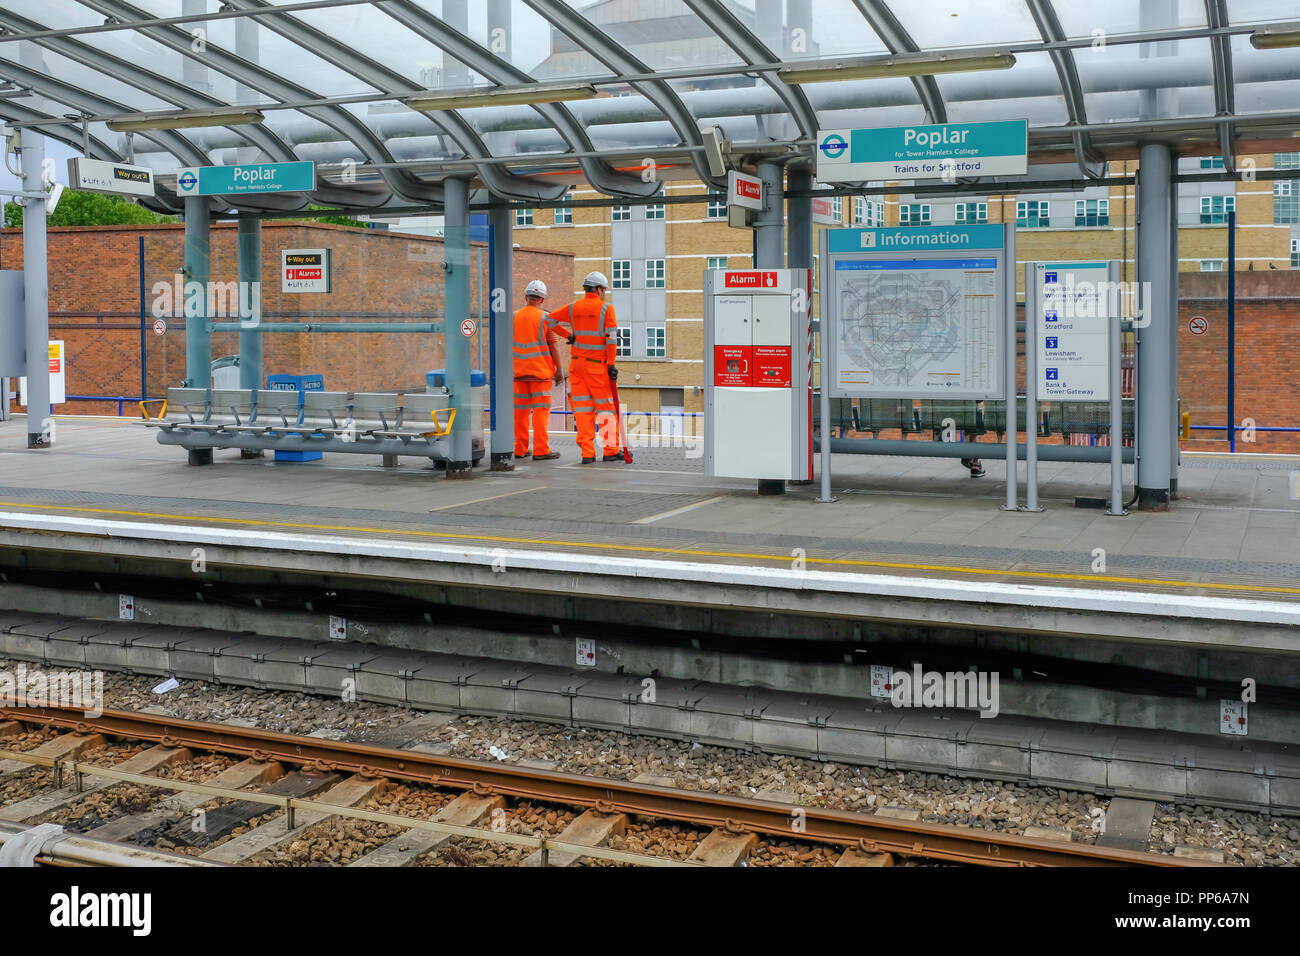 Poplar, London, UK - August 18, 2018: Two workmen dressed in high viz uniform in orange. Shows the workment waiting on the DLR platform for a train. - Stock Image